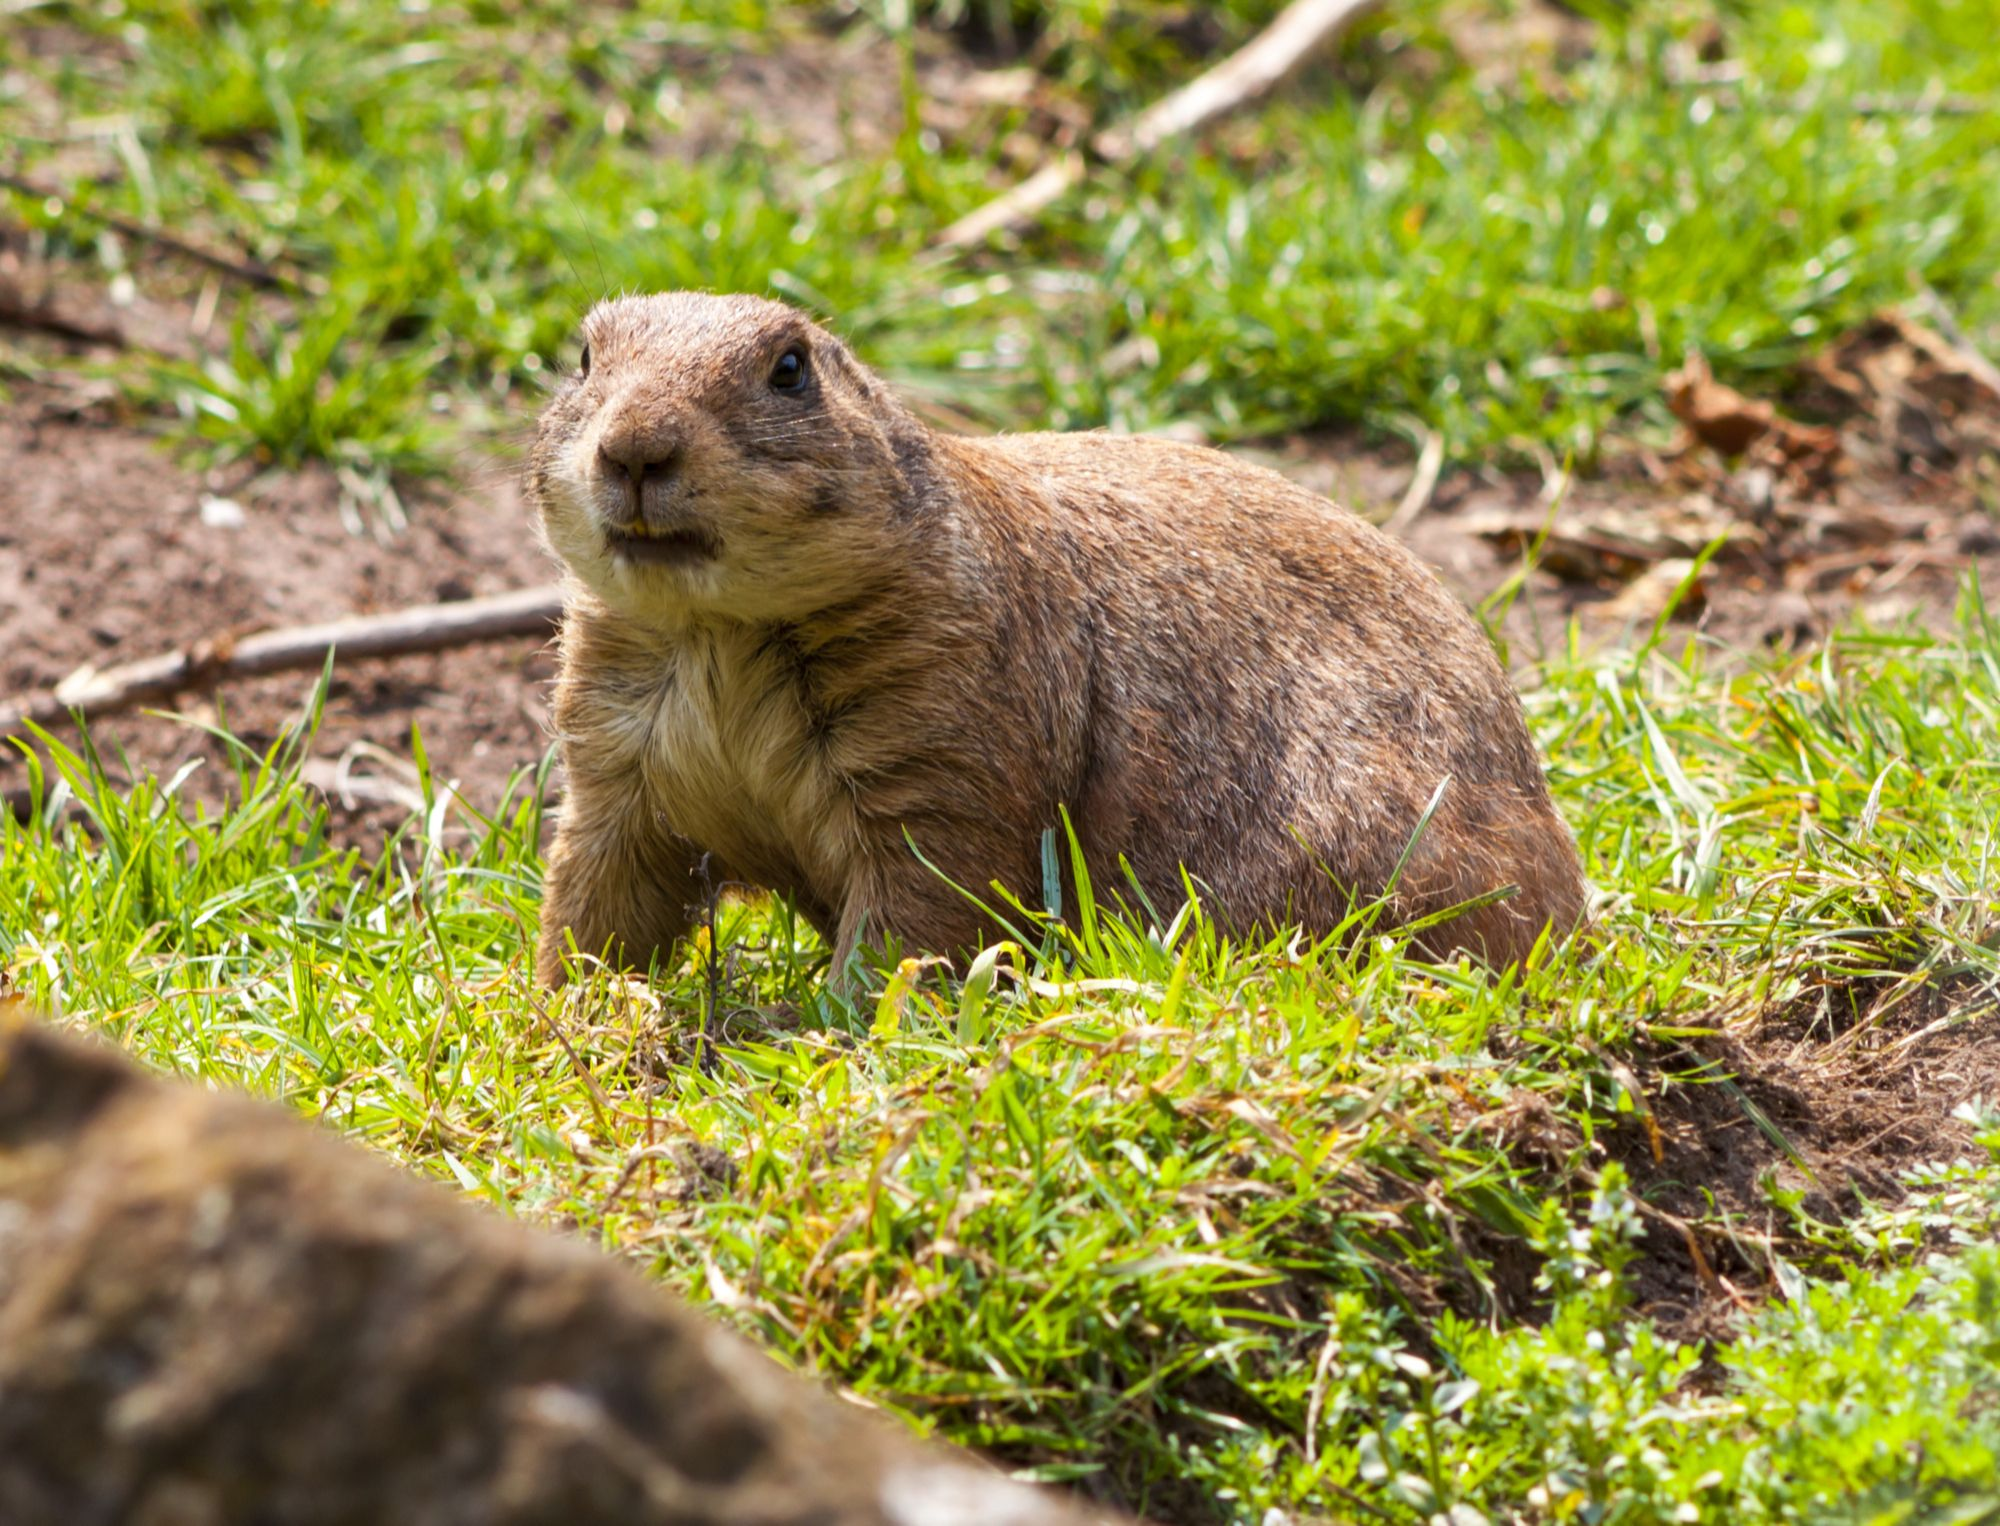 How To Get Rid Of Gophers Naturally Getting Rid Of Gophers